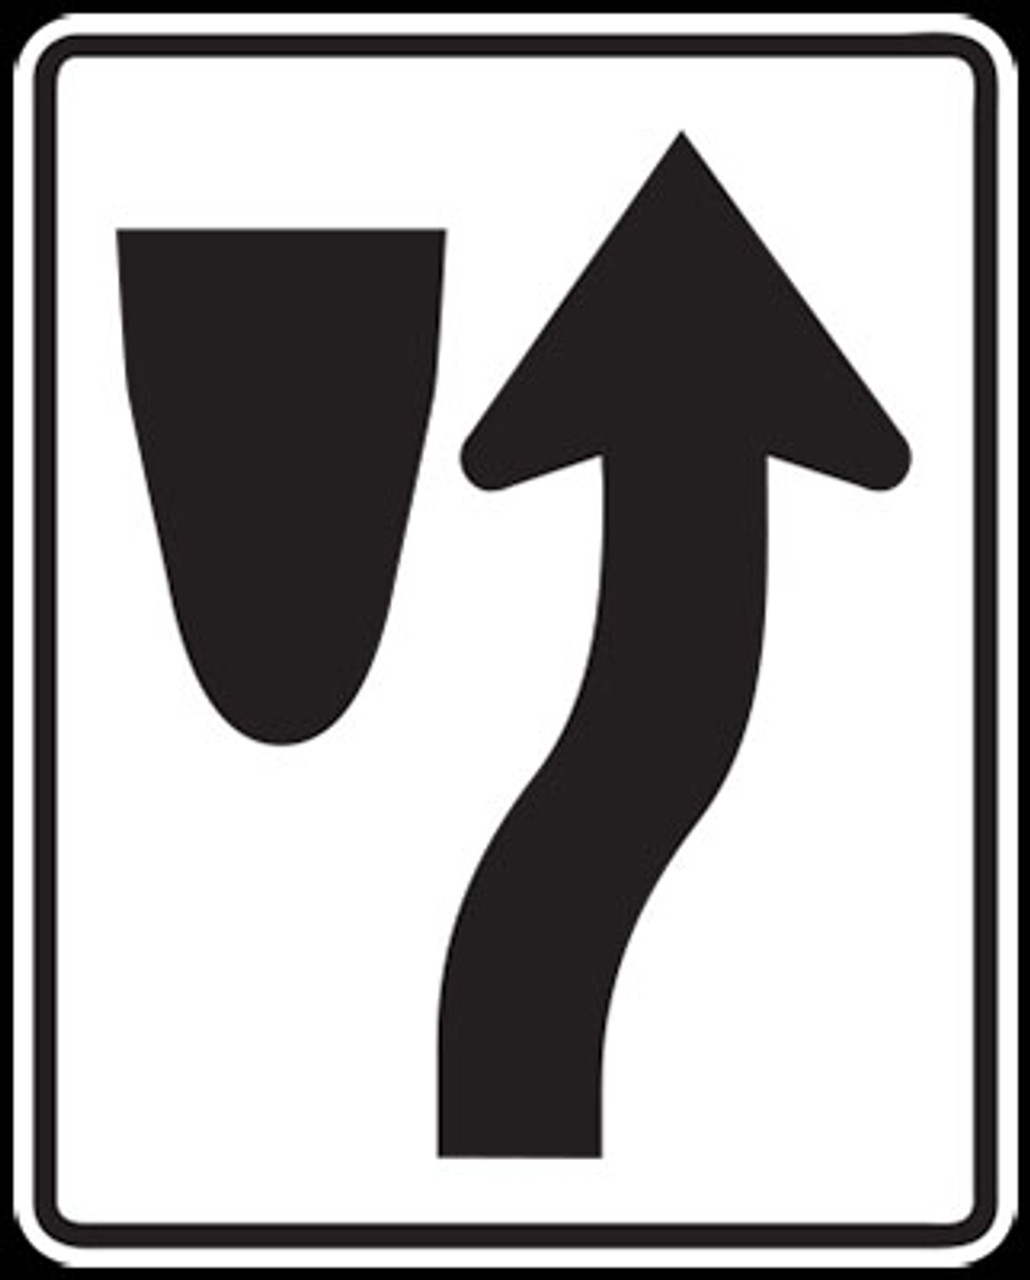 Median Keep Right (Roadway Sign)